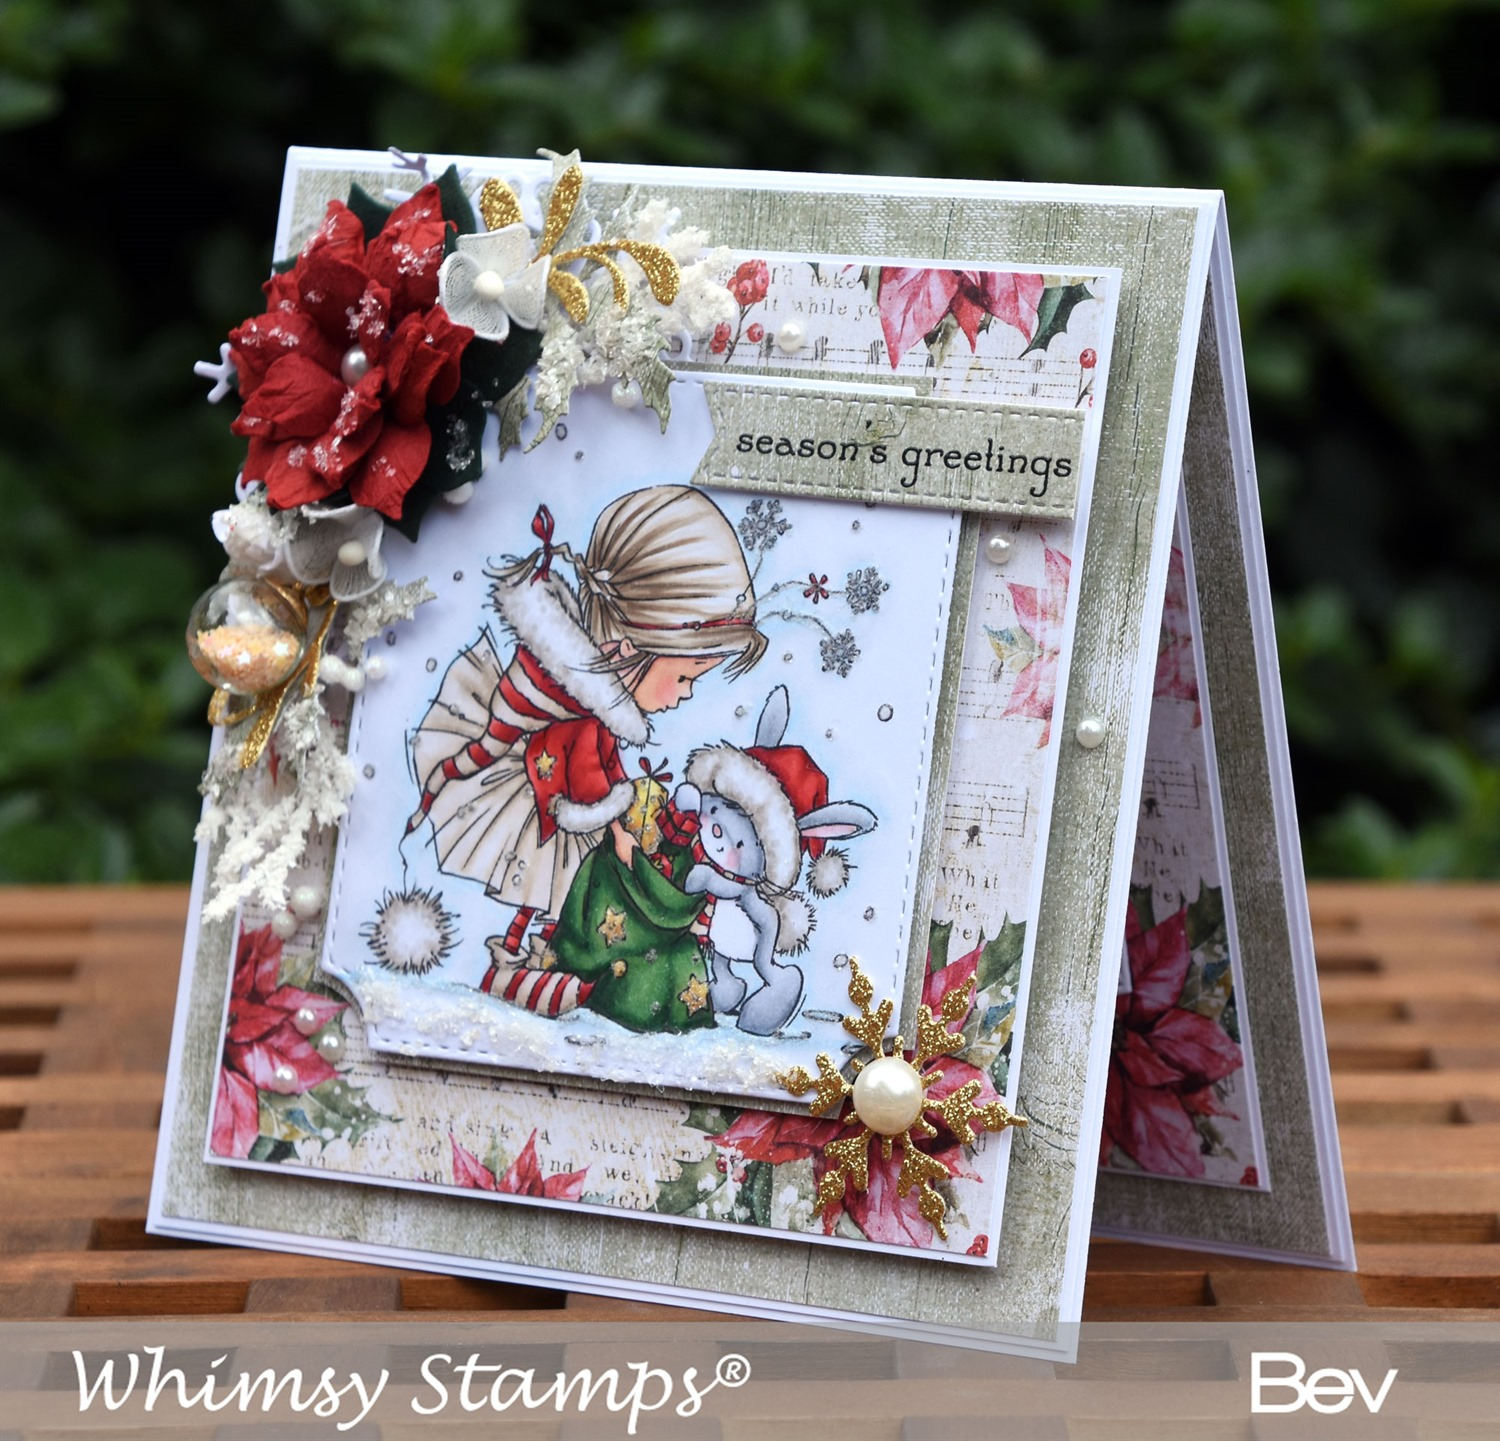 [bev-rochester-whimsy-stamps-santa%27s-helpers2%5B2%5D]